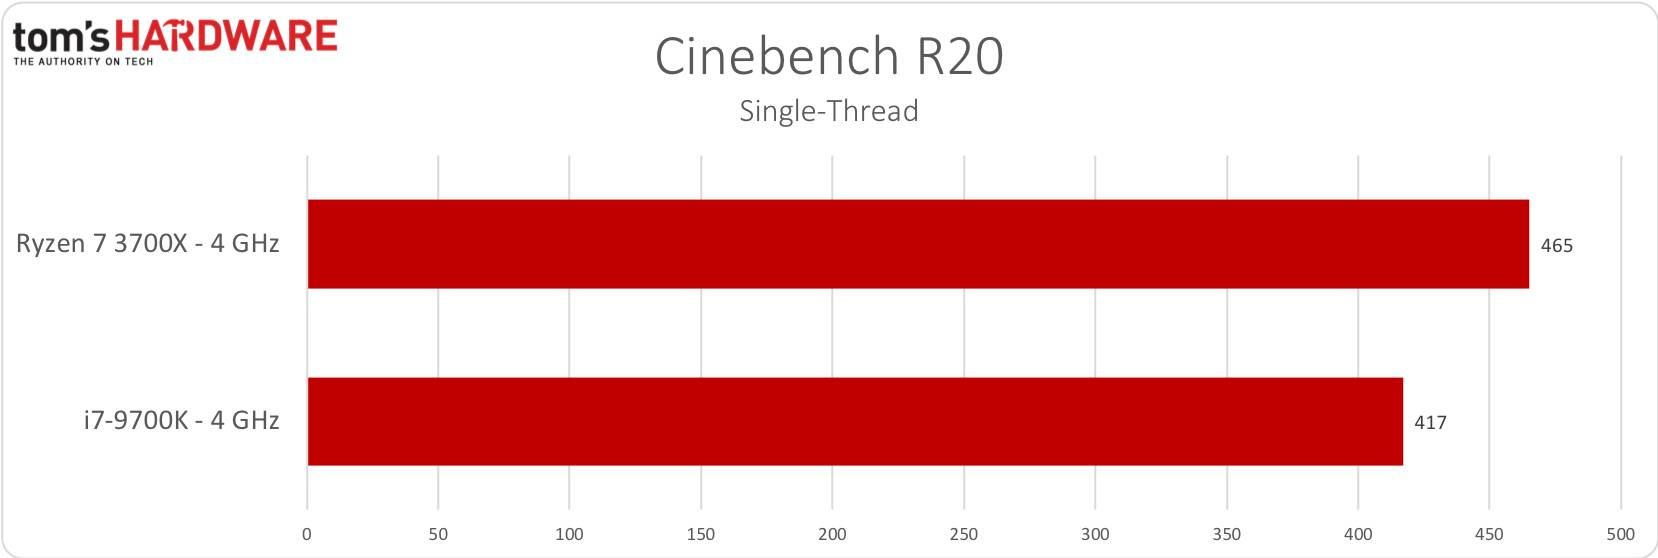 Cinebench R20 1T - 4GHz